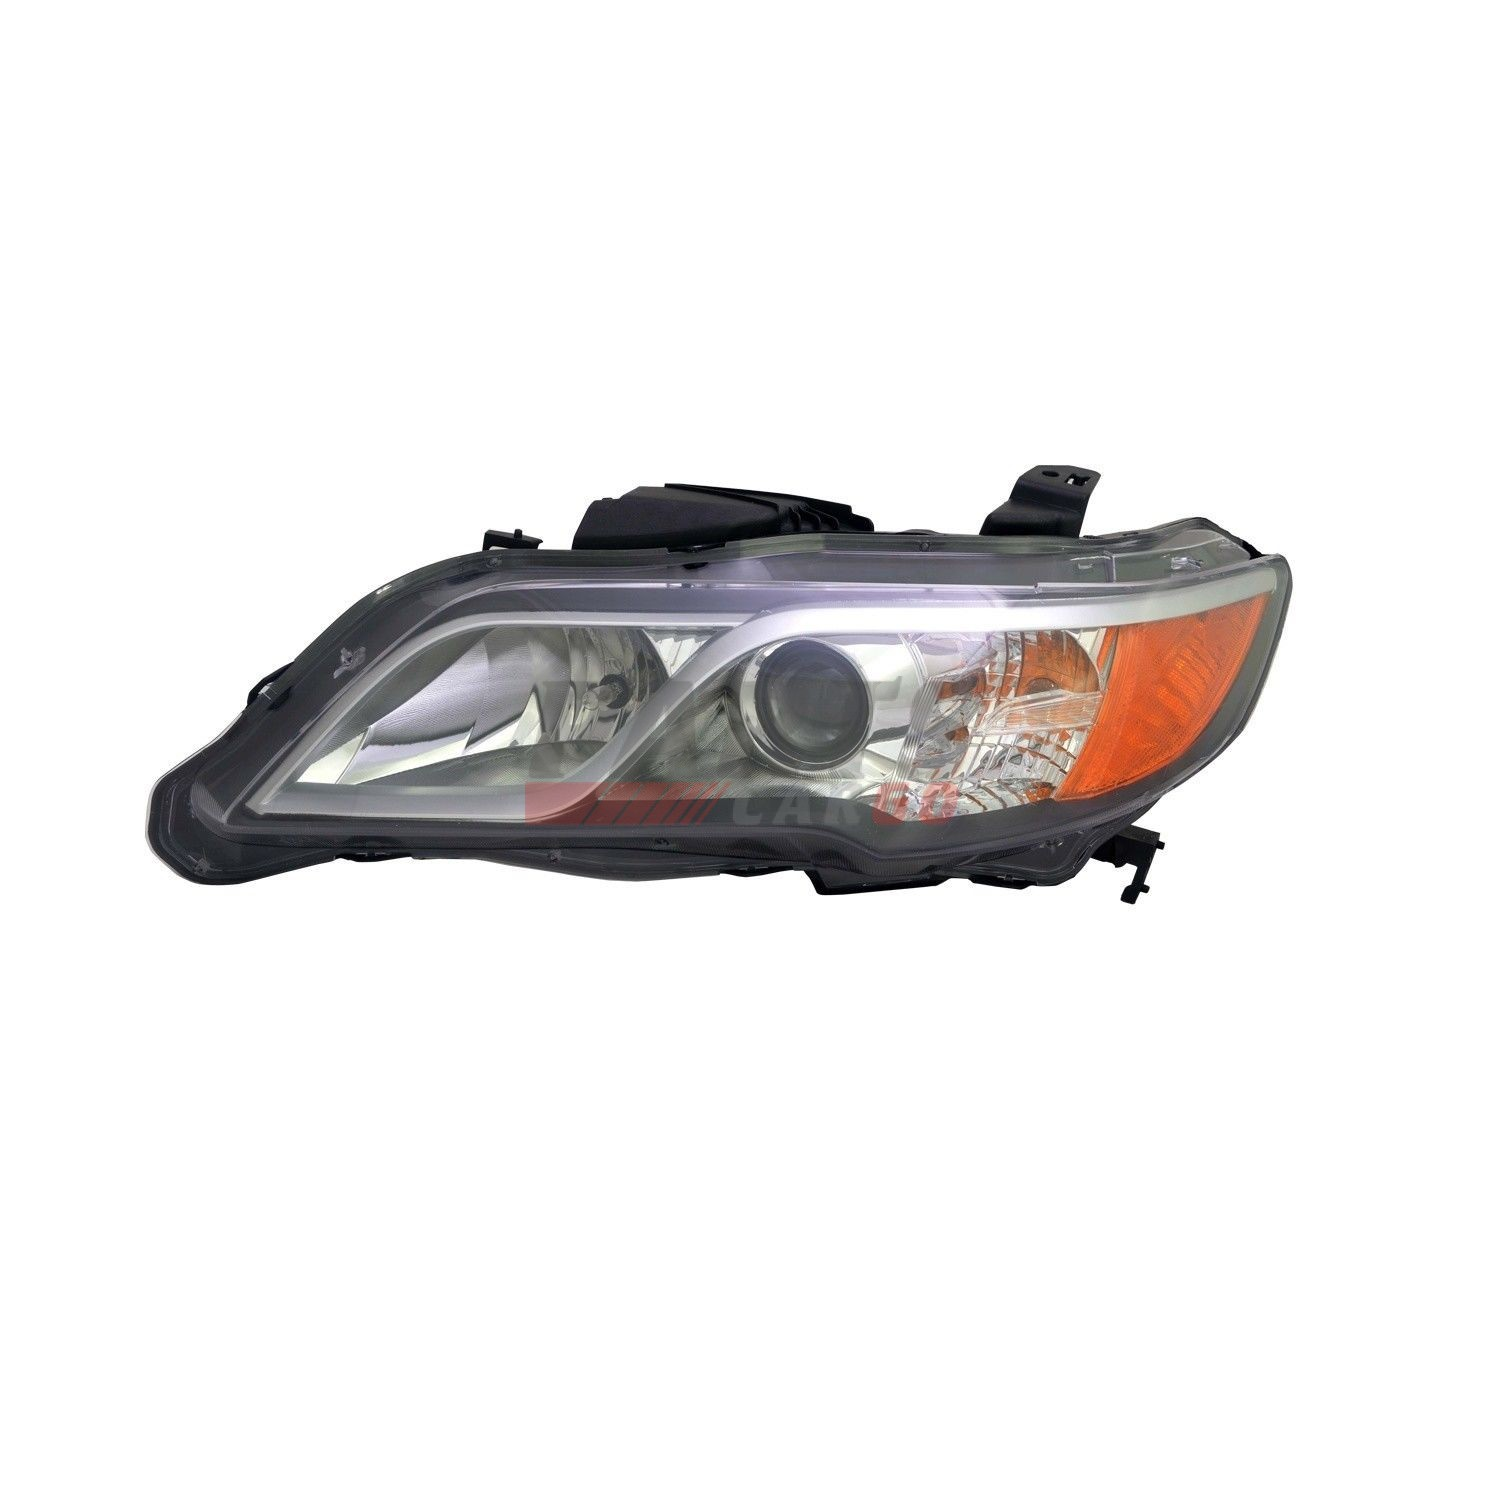 NEW HID HEAD LIGHT LENS AND HOUSING LEFT FITS 2013-2015